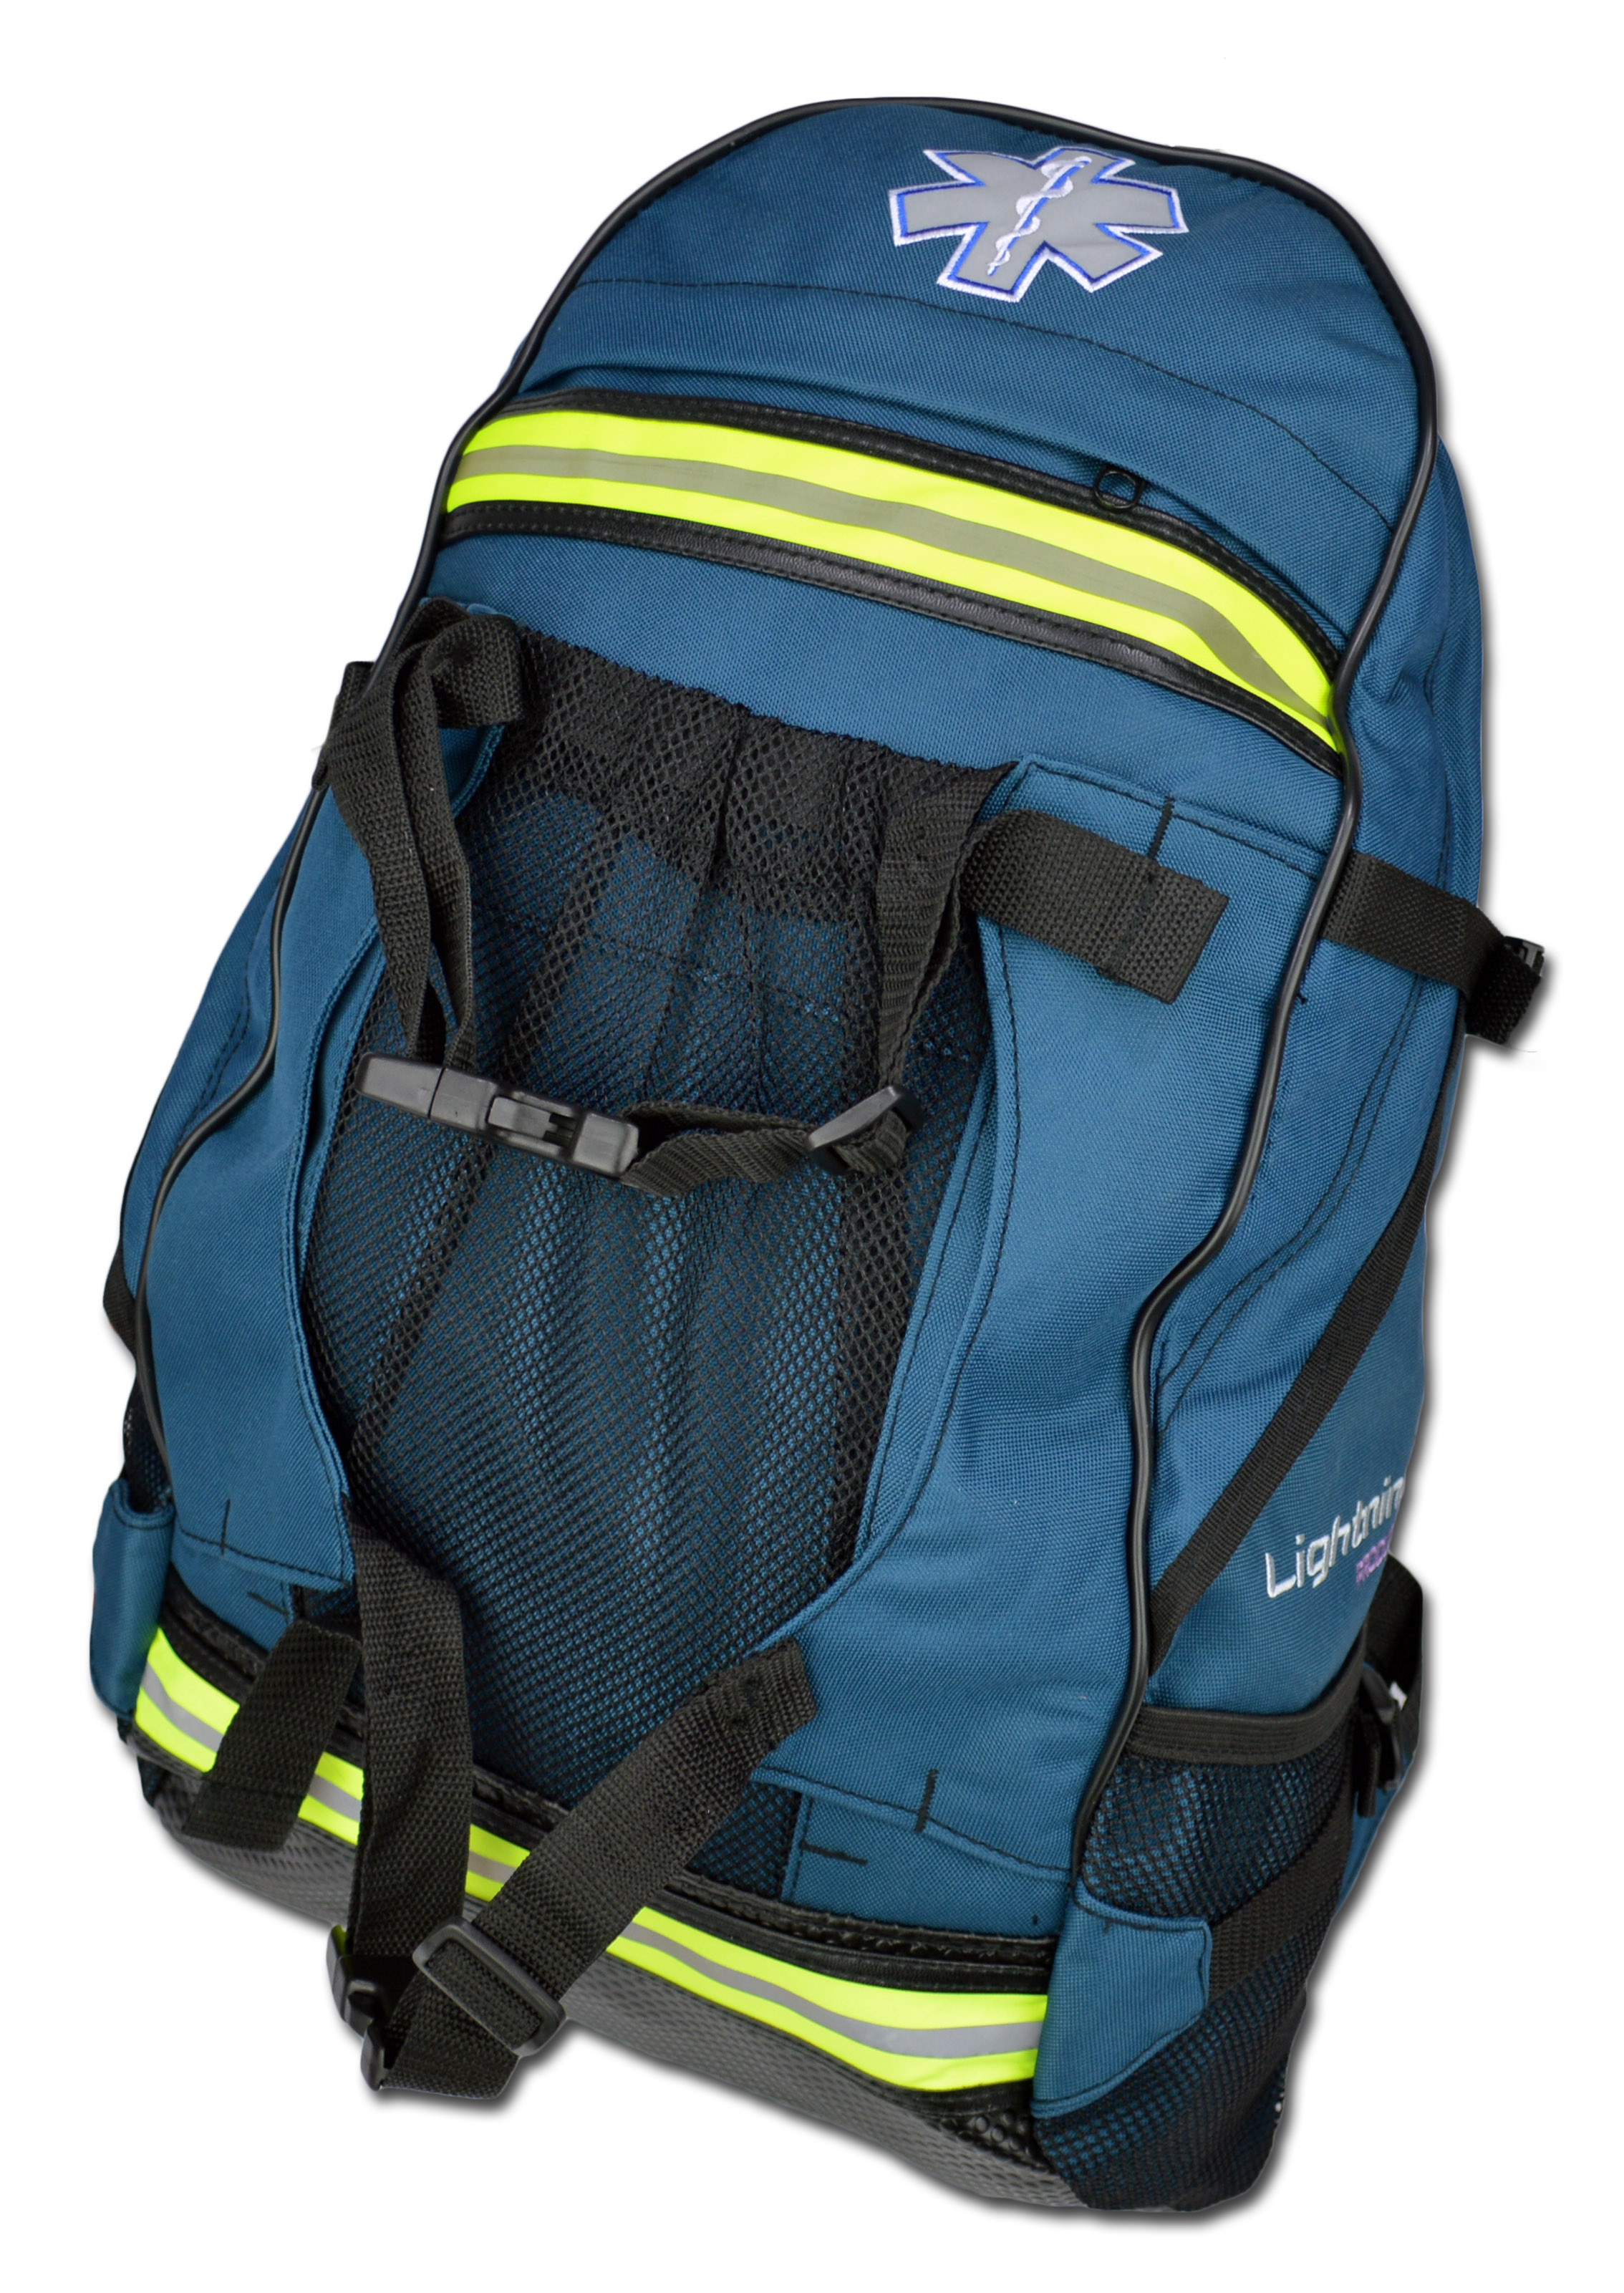 Lightning X EMS Special Events First Aid EMT First Responder Trauma Backpack BLS Bag by Lightning X Products, Inc